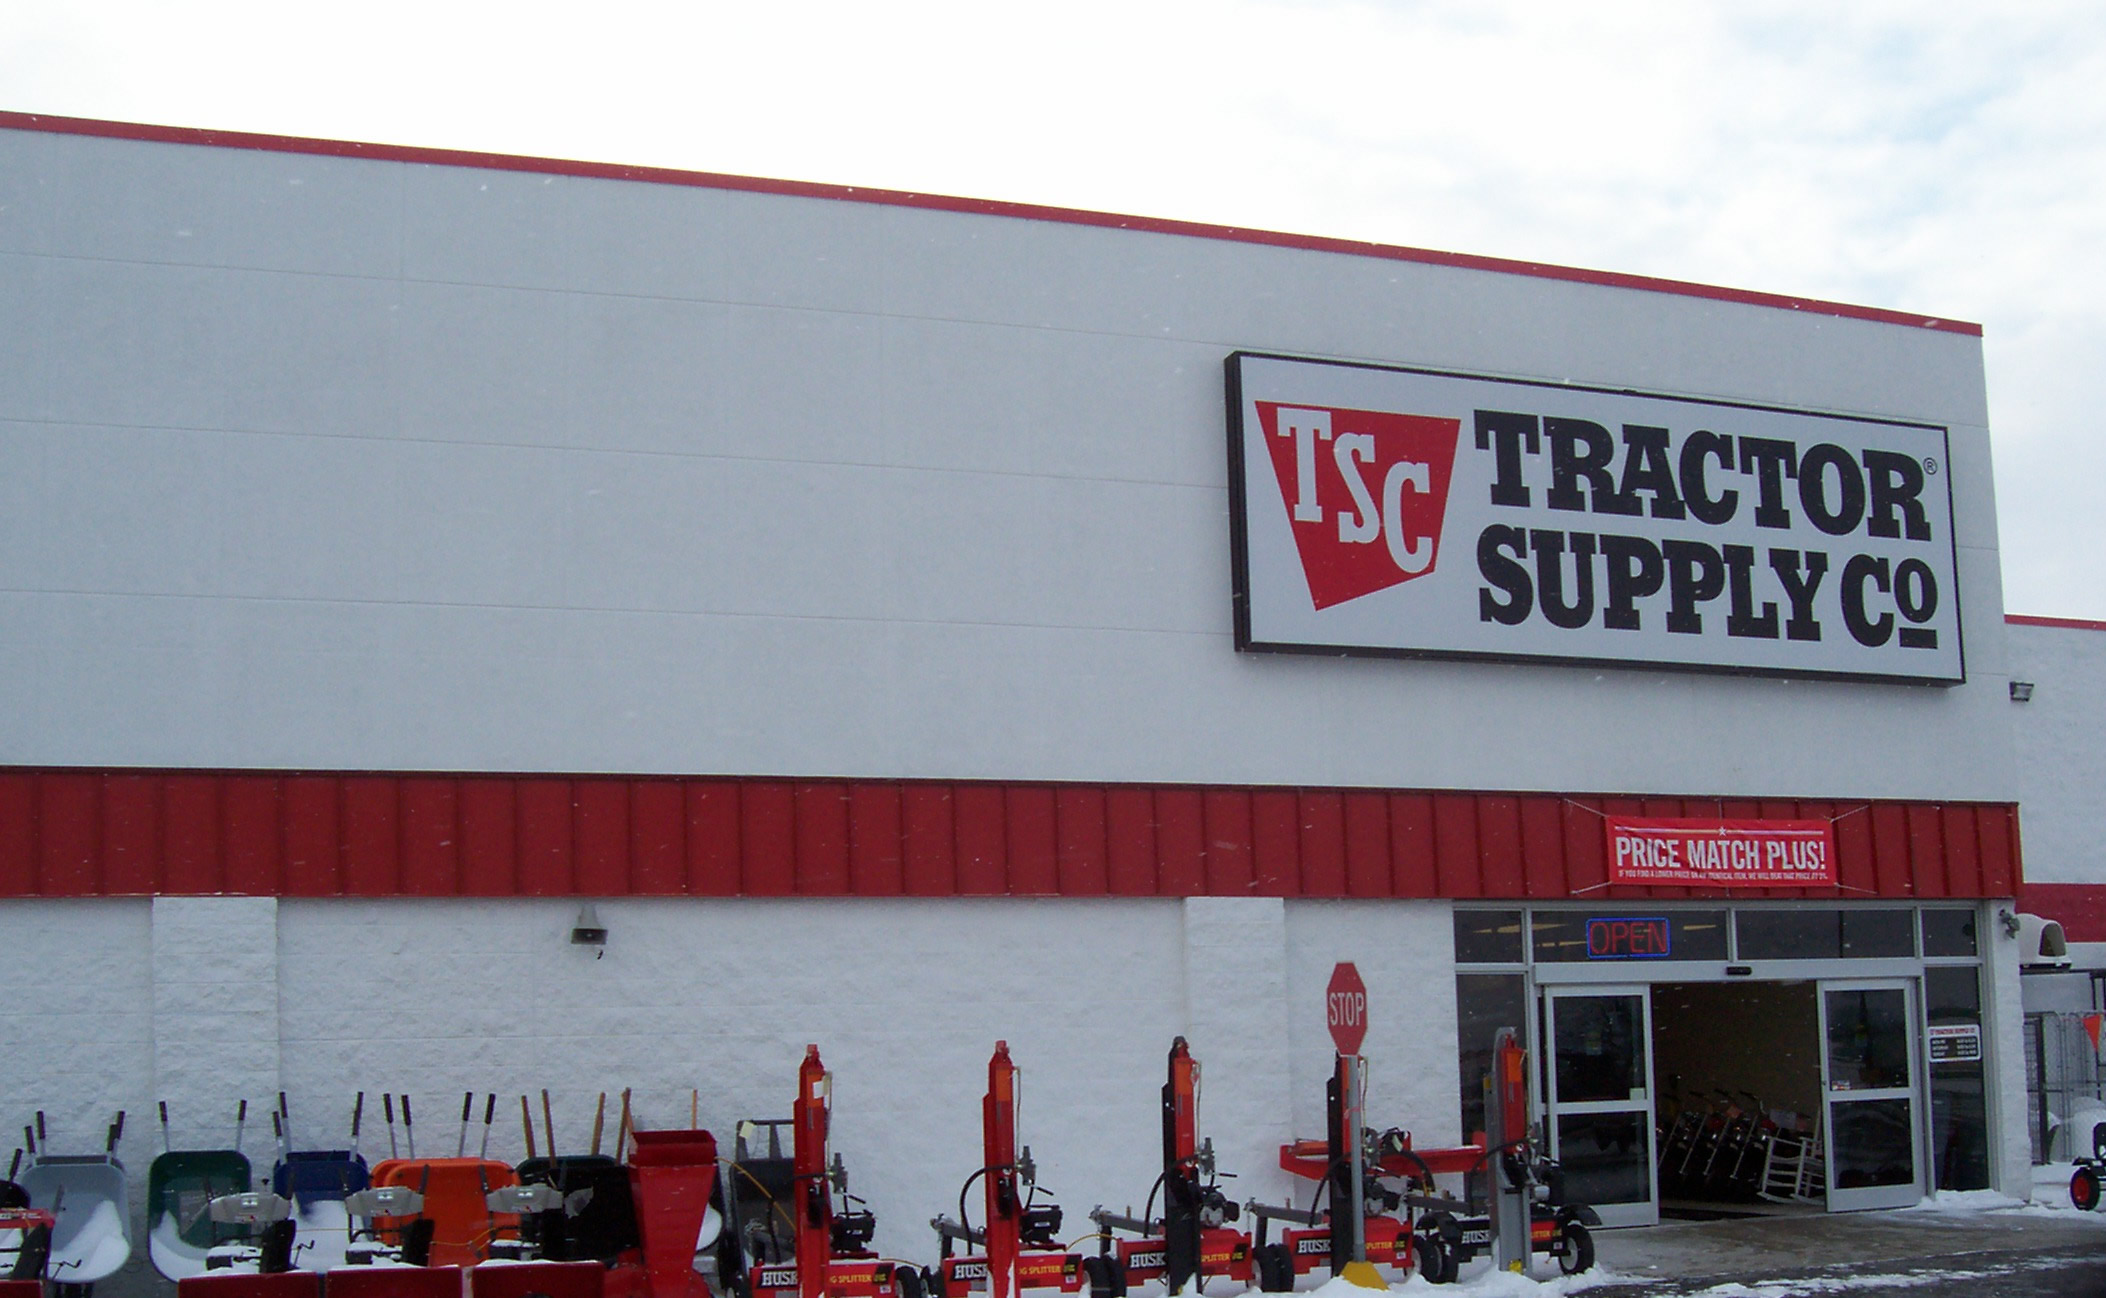 Tsc Tractor Supply Catalog : Tractor supply toys bing images